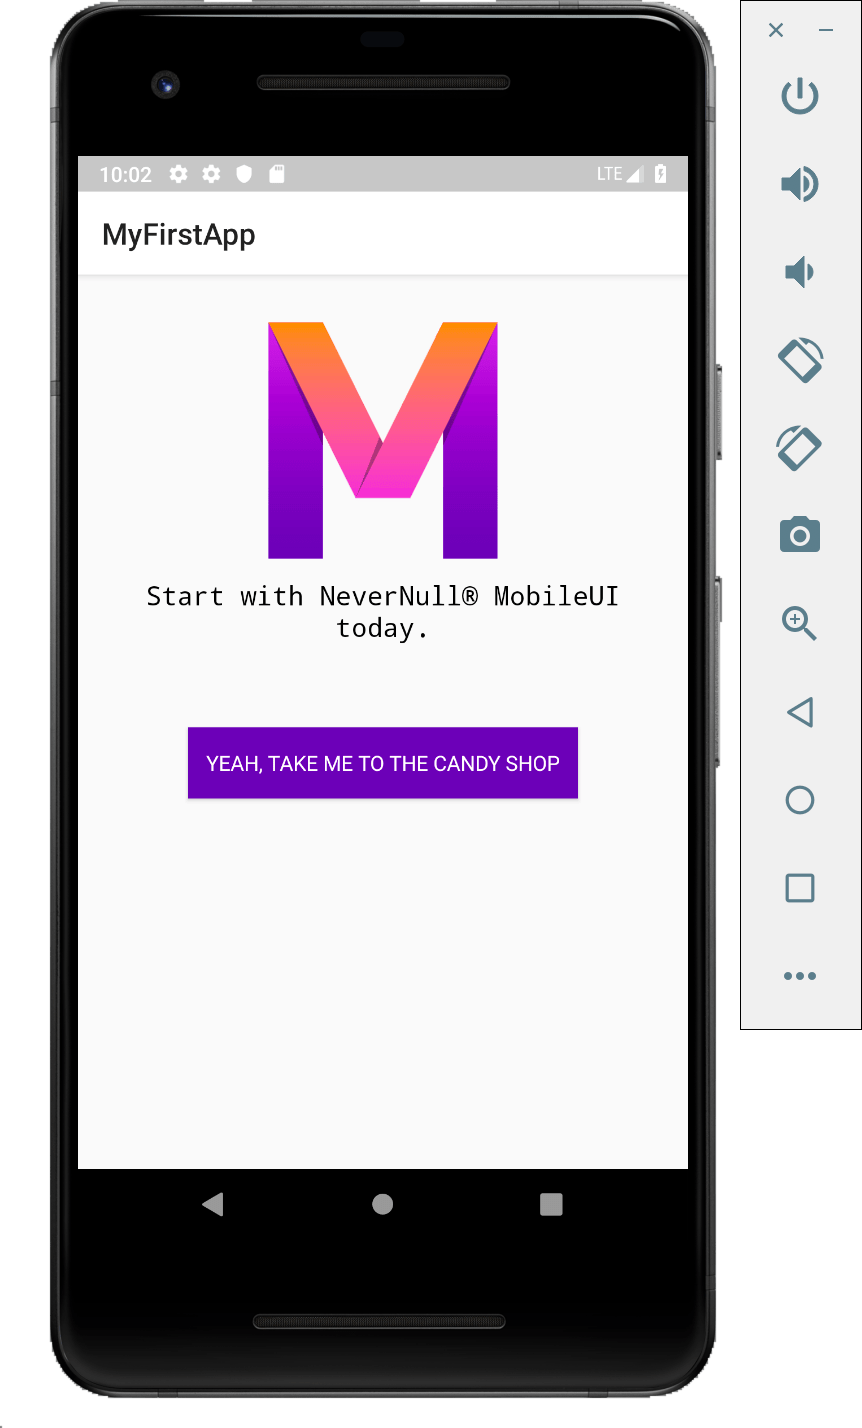 Android emulator with MobileUI app